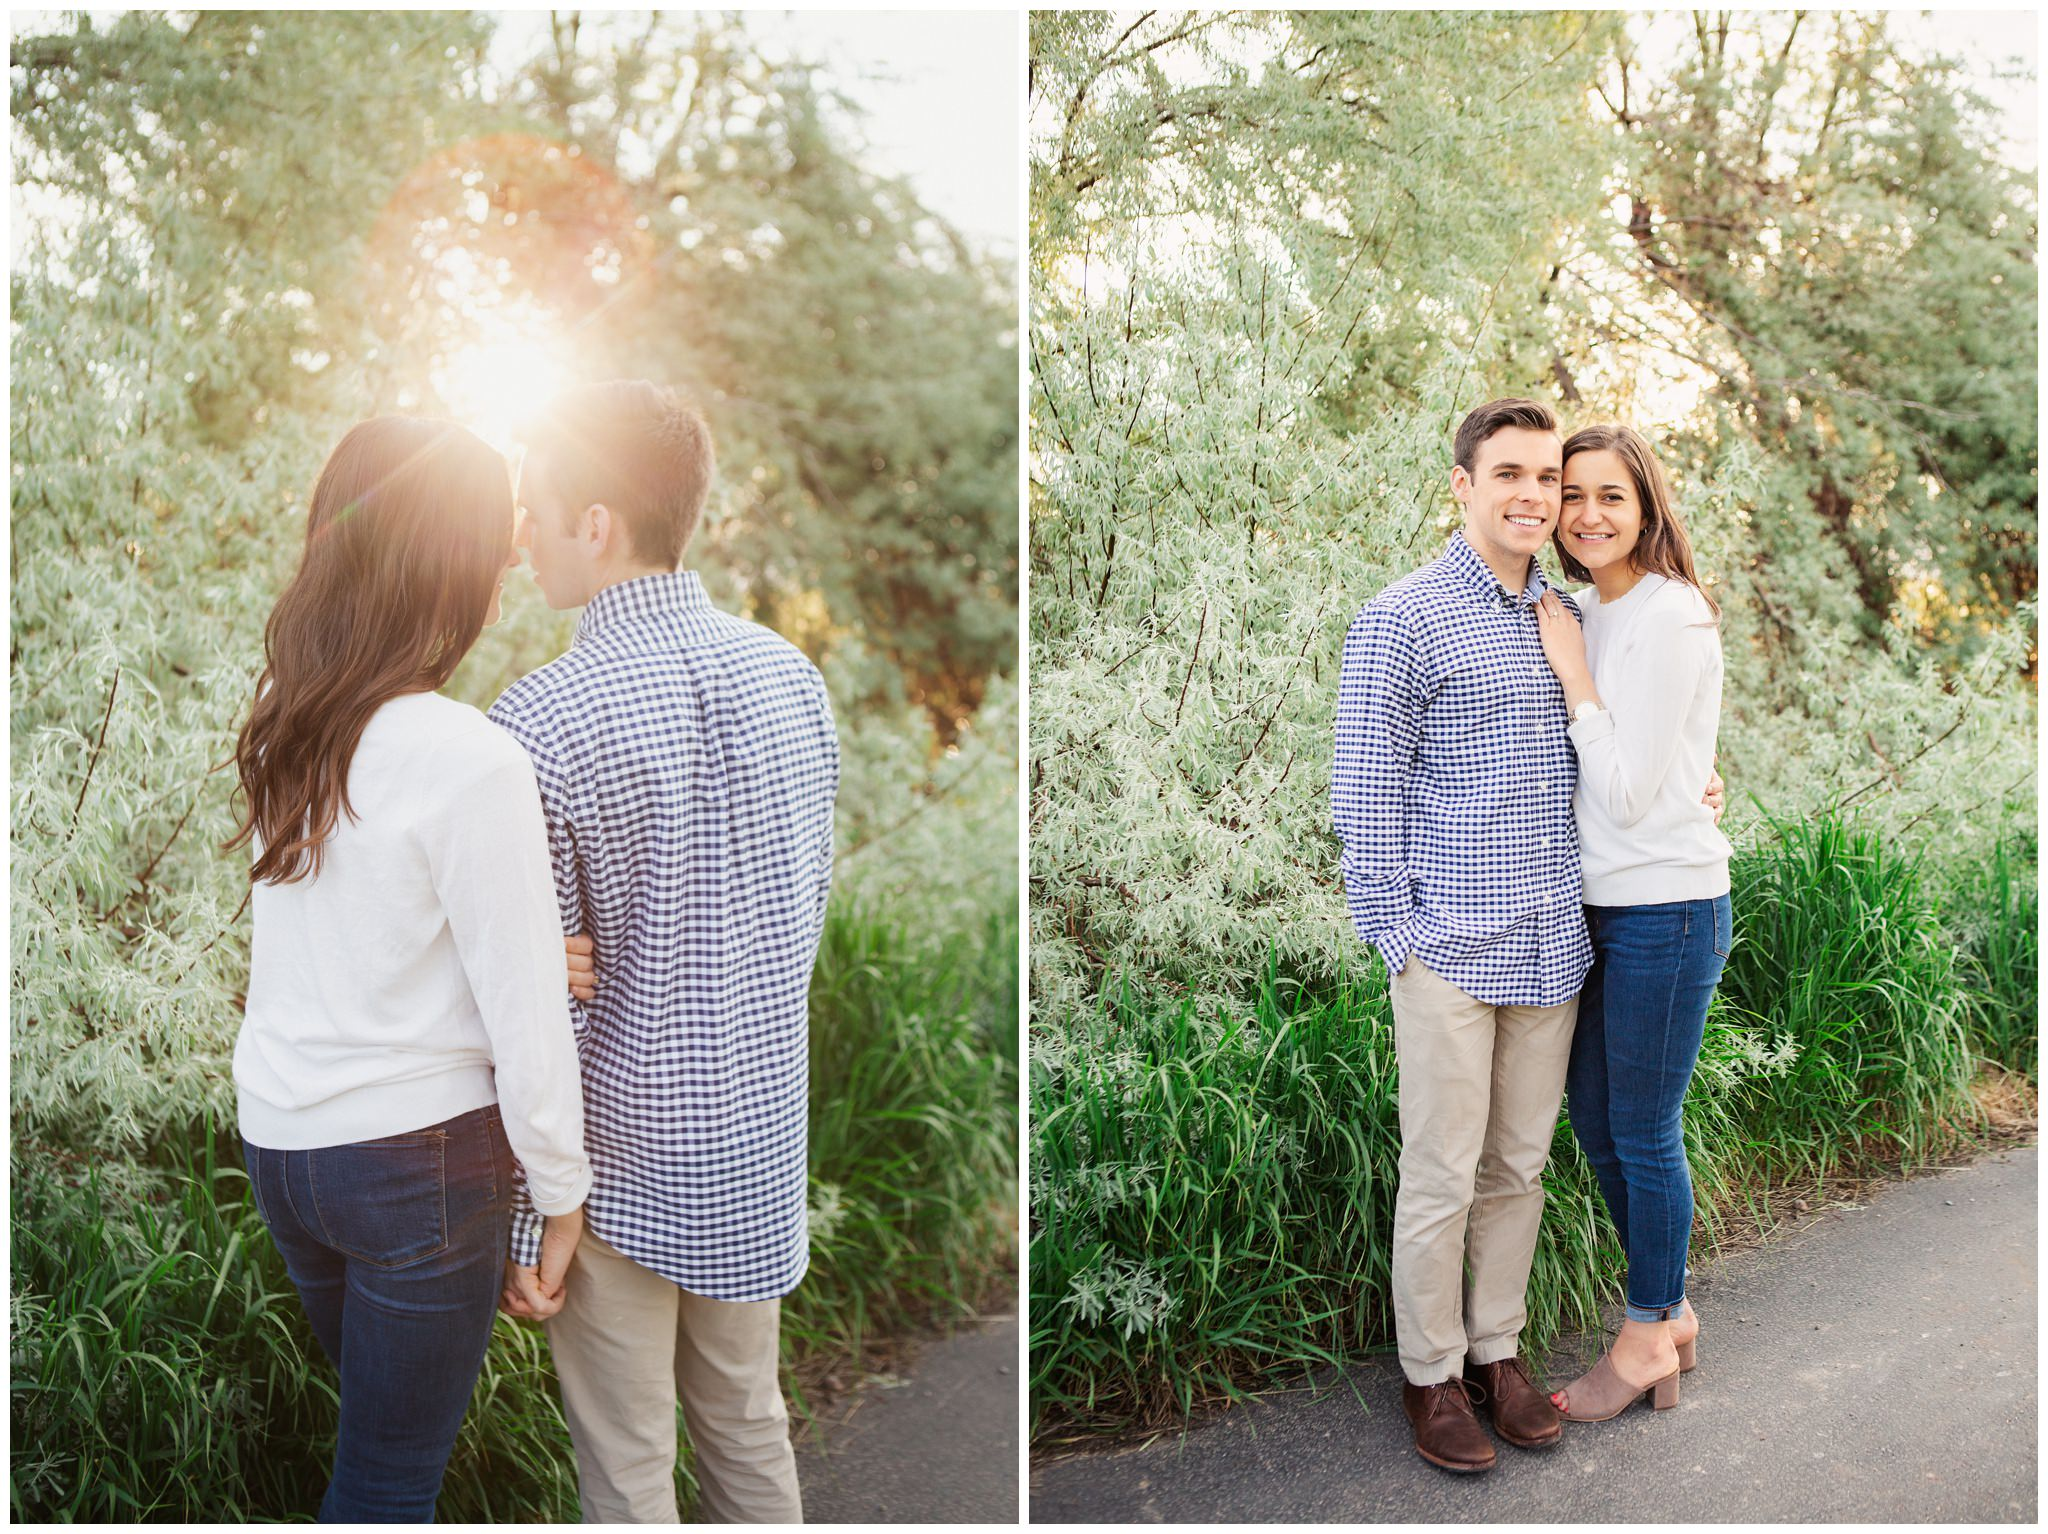 Engagement photos with the groom wearing a blue shirt and the bride wearing a white shirt